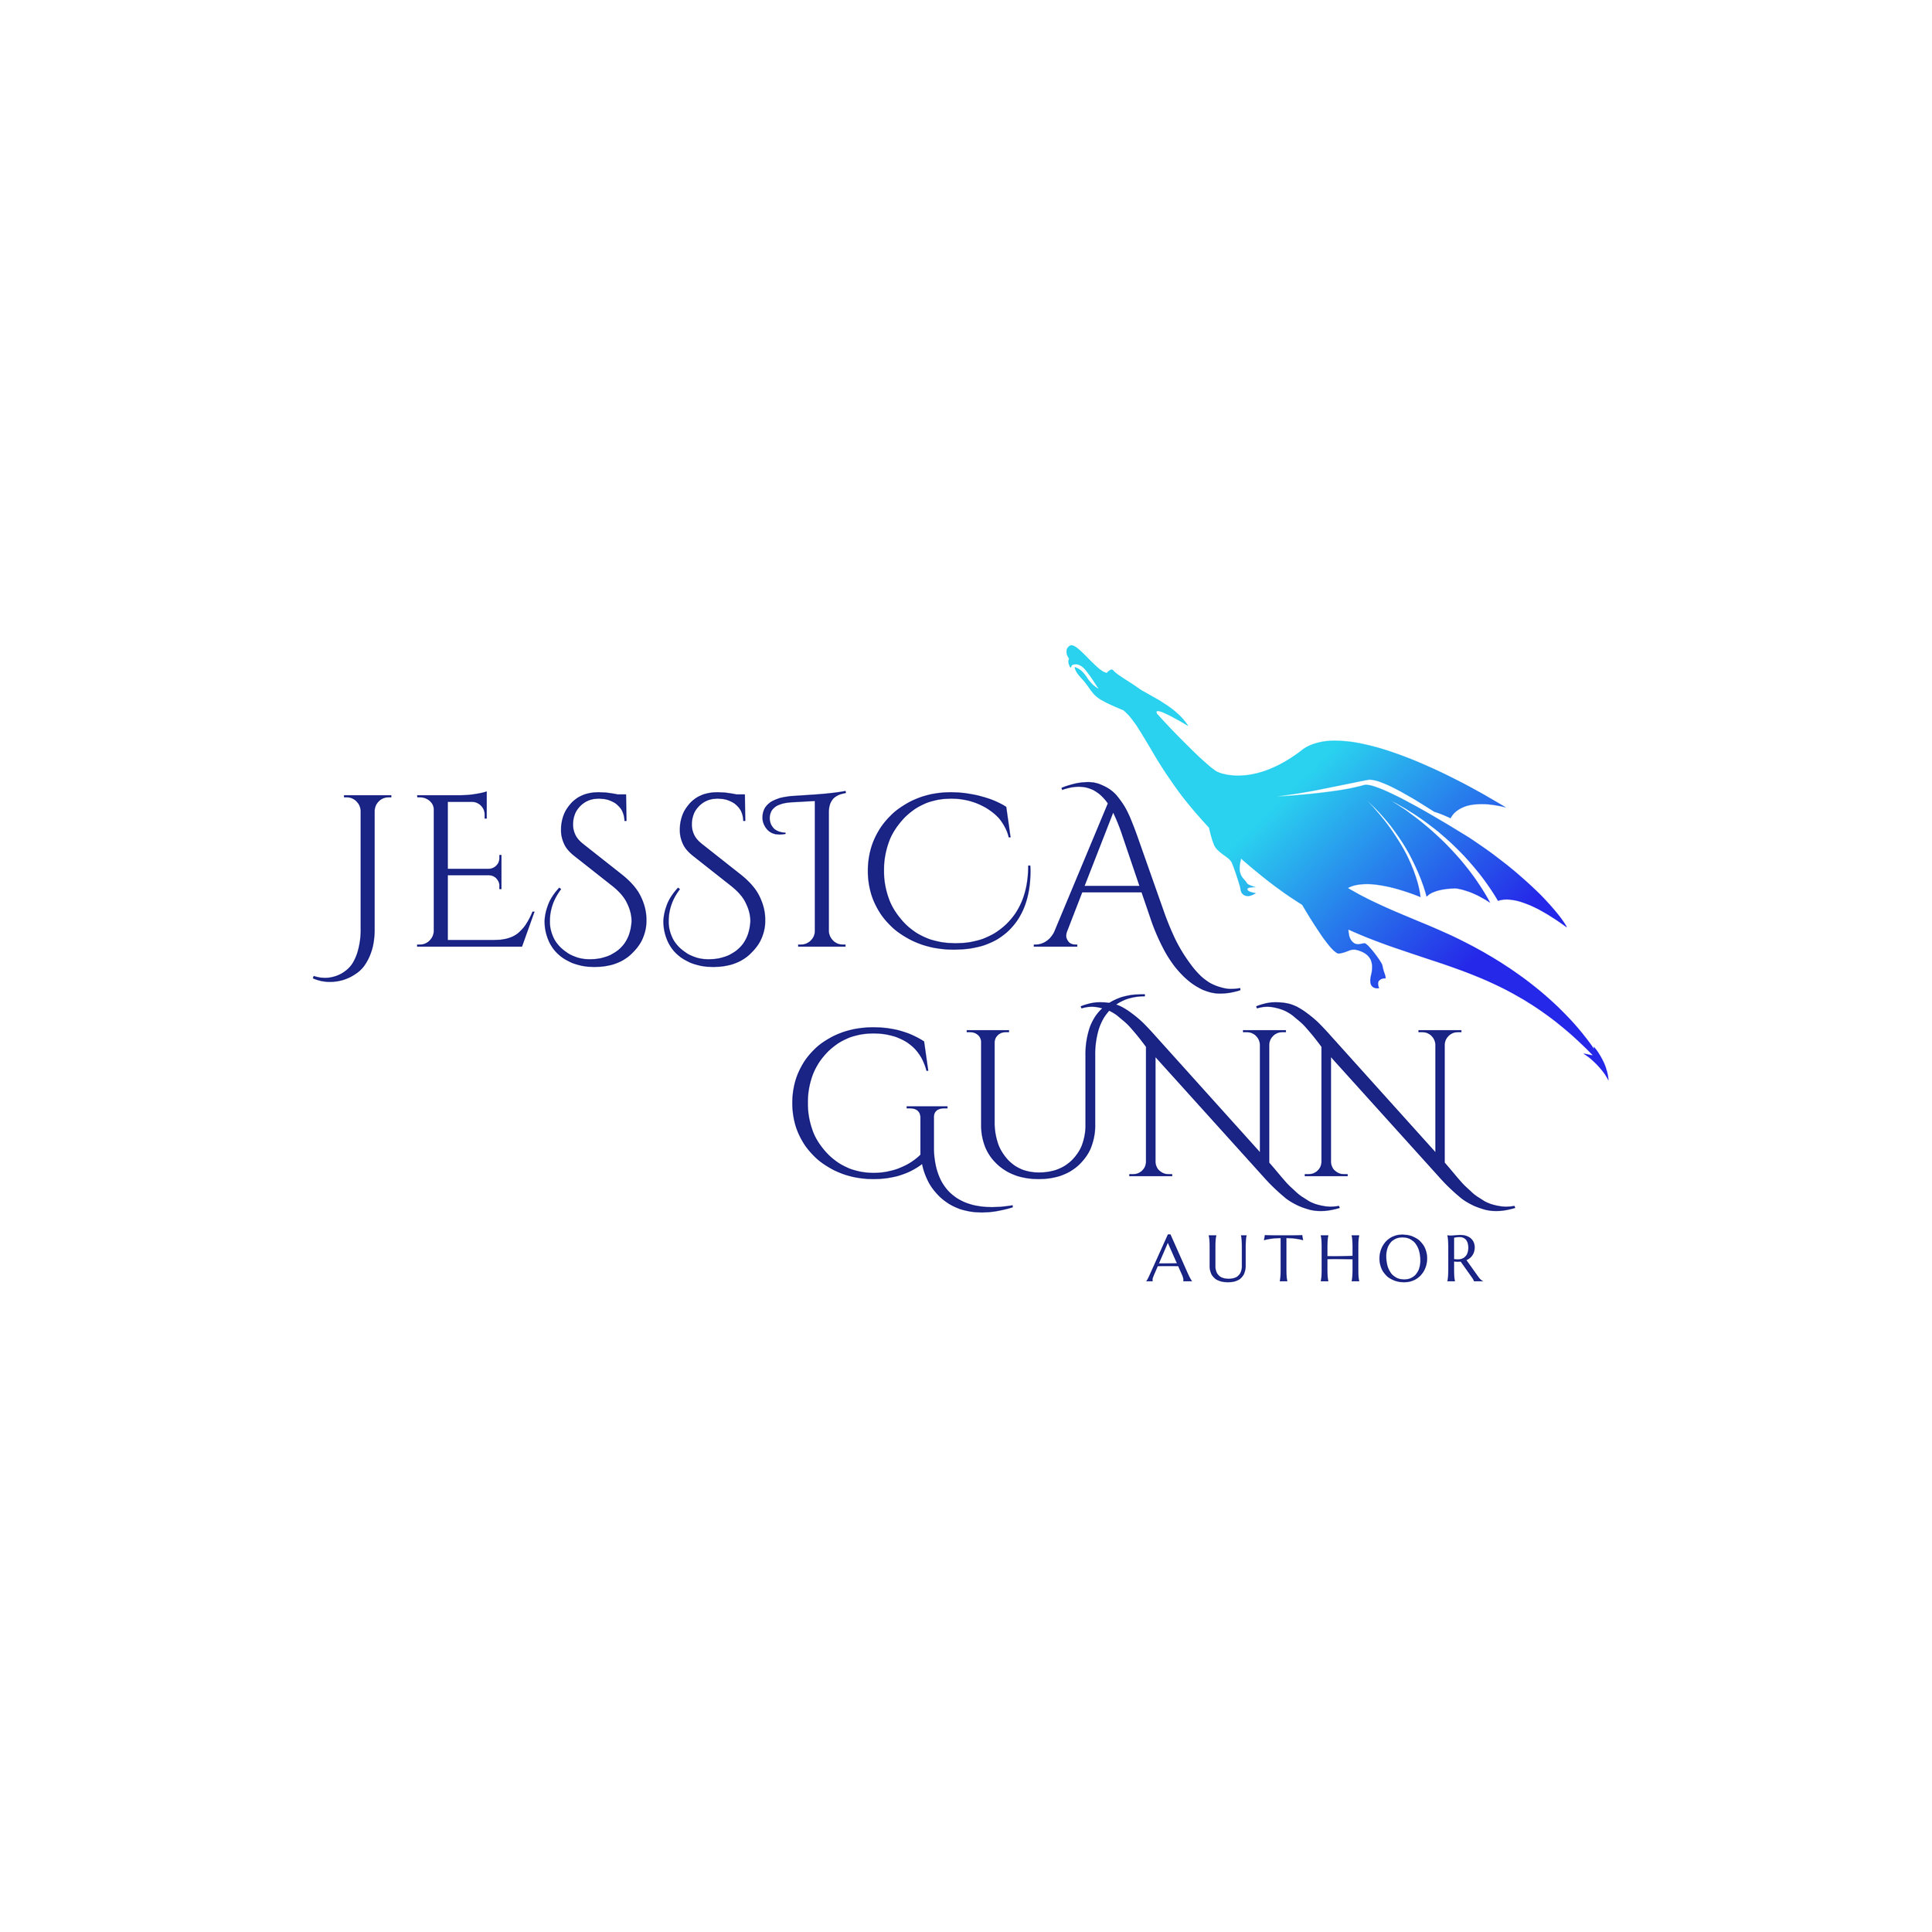 Jessica Gunn Author